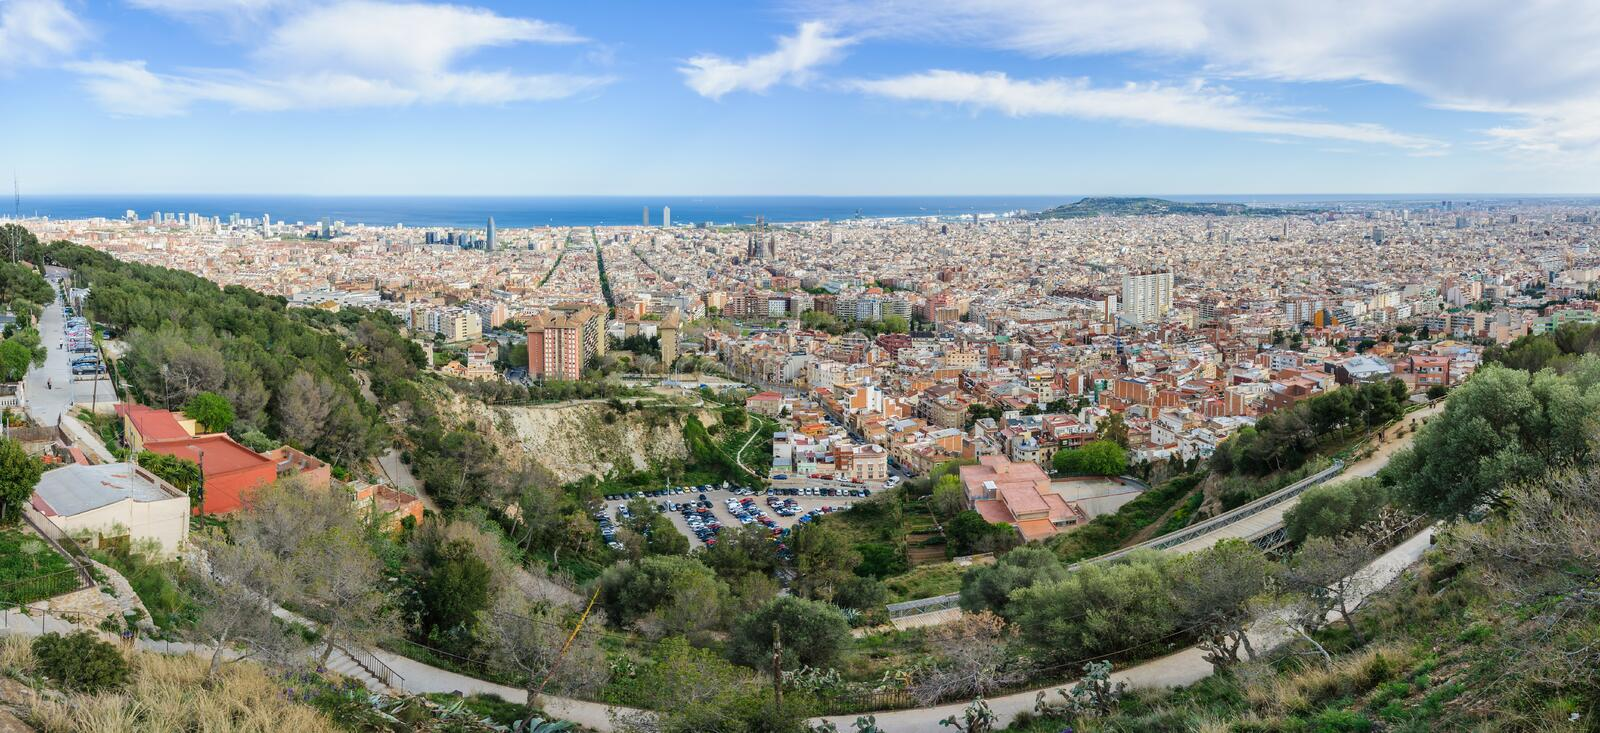 Panoramic view from Turo del Rovira in Barcelona, Spain. The skyline of the city from the hill of Turo del Rovira in Barcelona, Catalonia, Spain stock photography